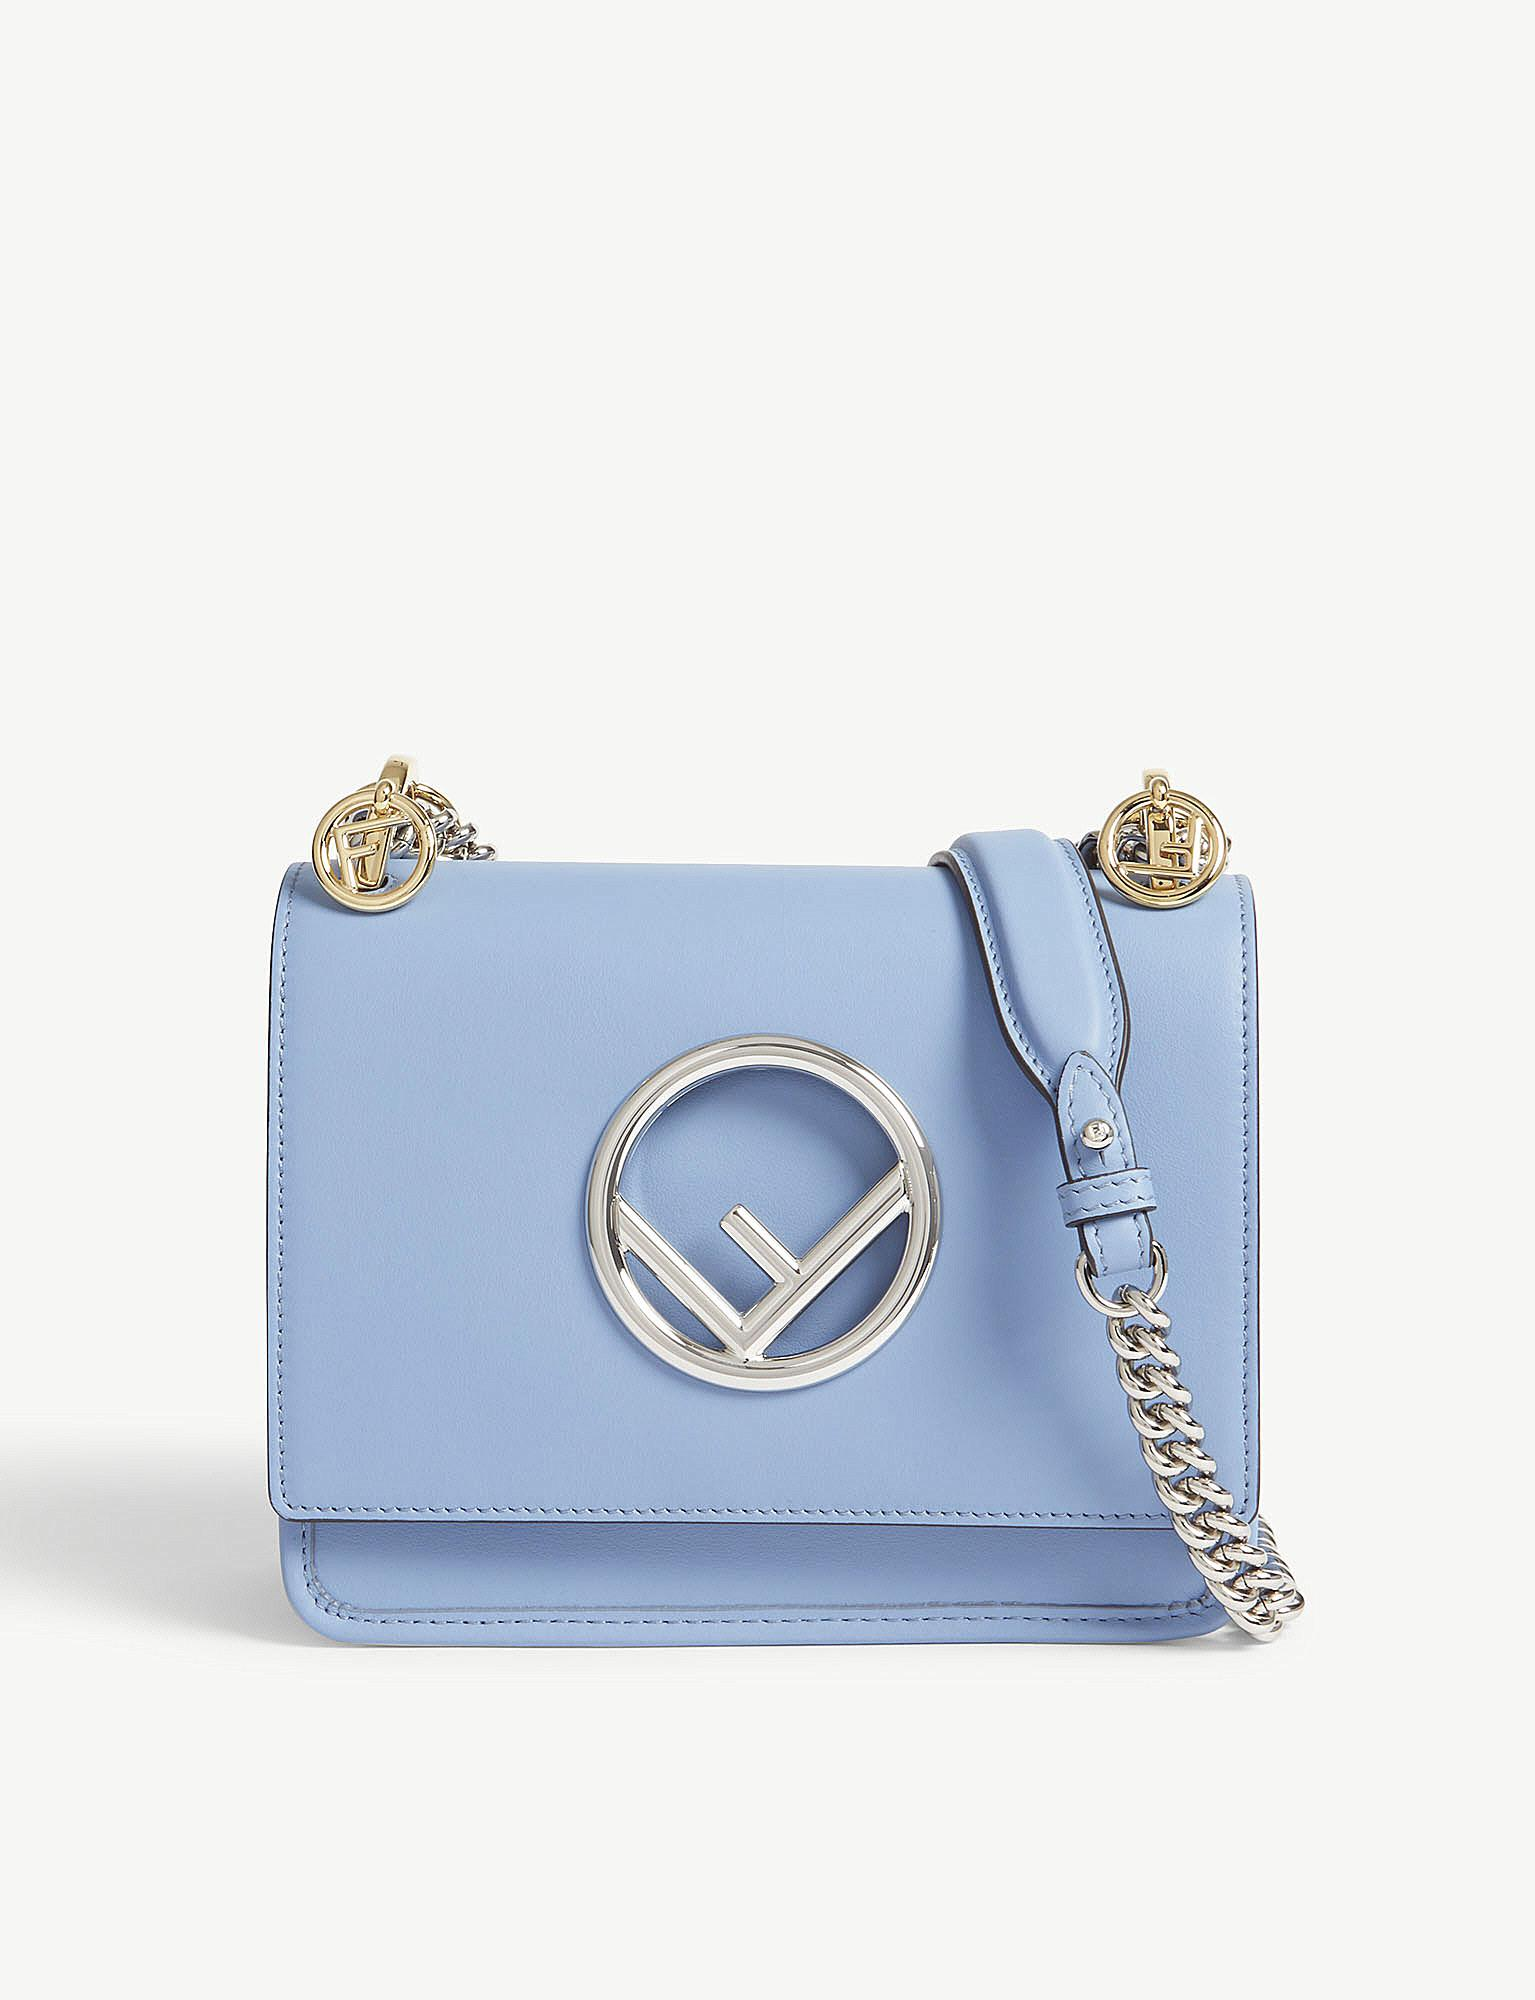 3f9fe1afd9 Lyst - Fendi Kan I Small Leather Cross-body Bag in Blue